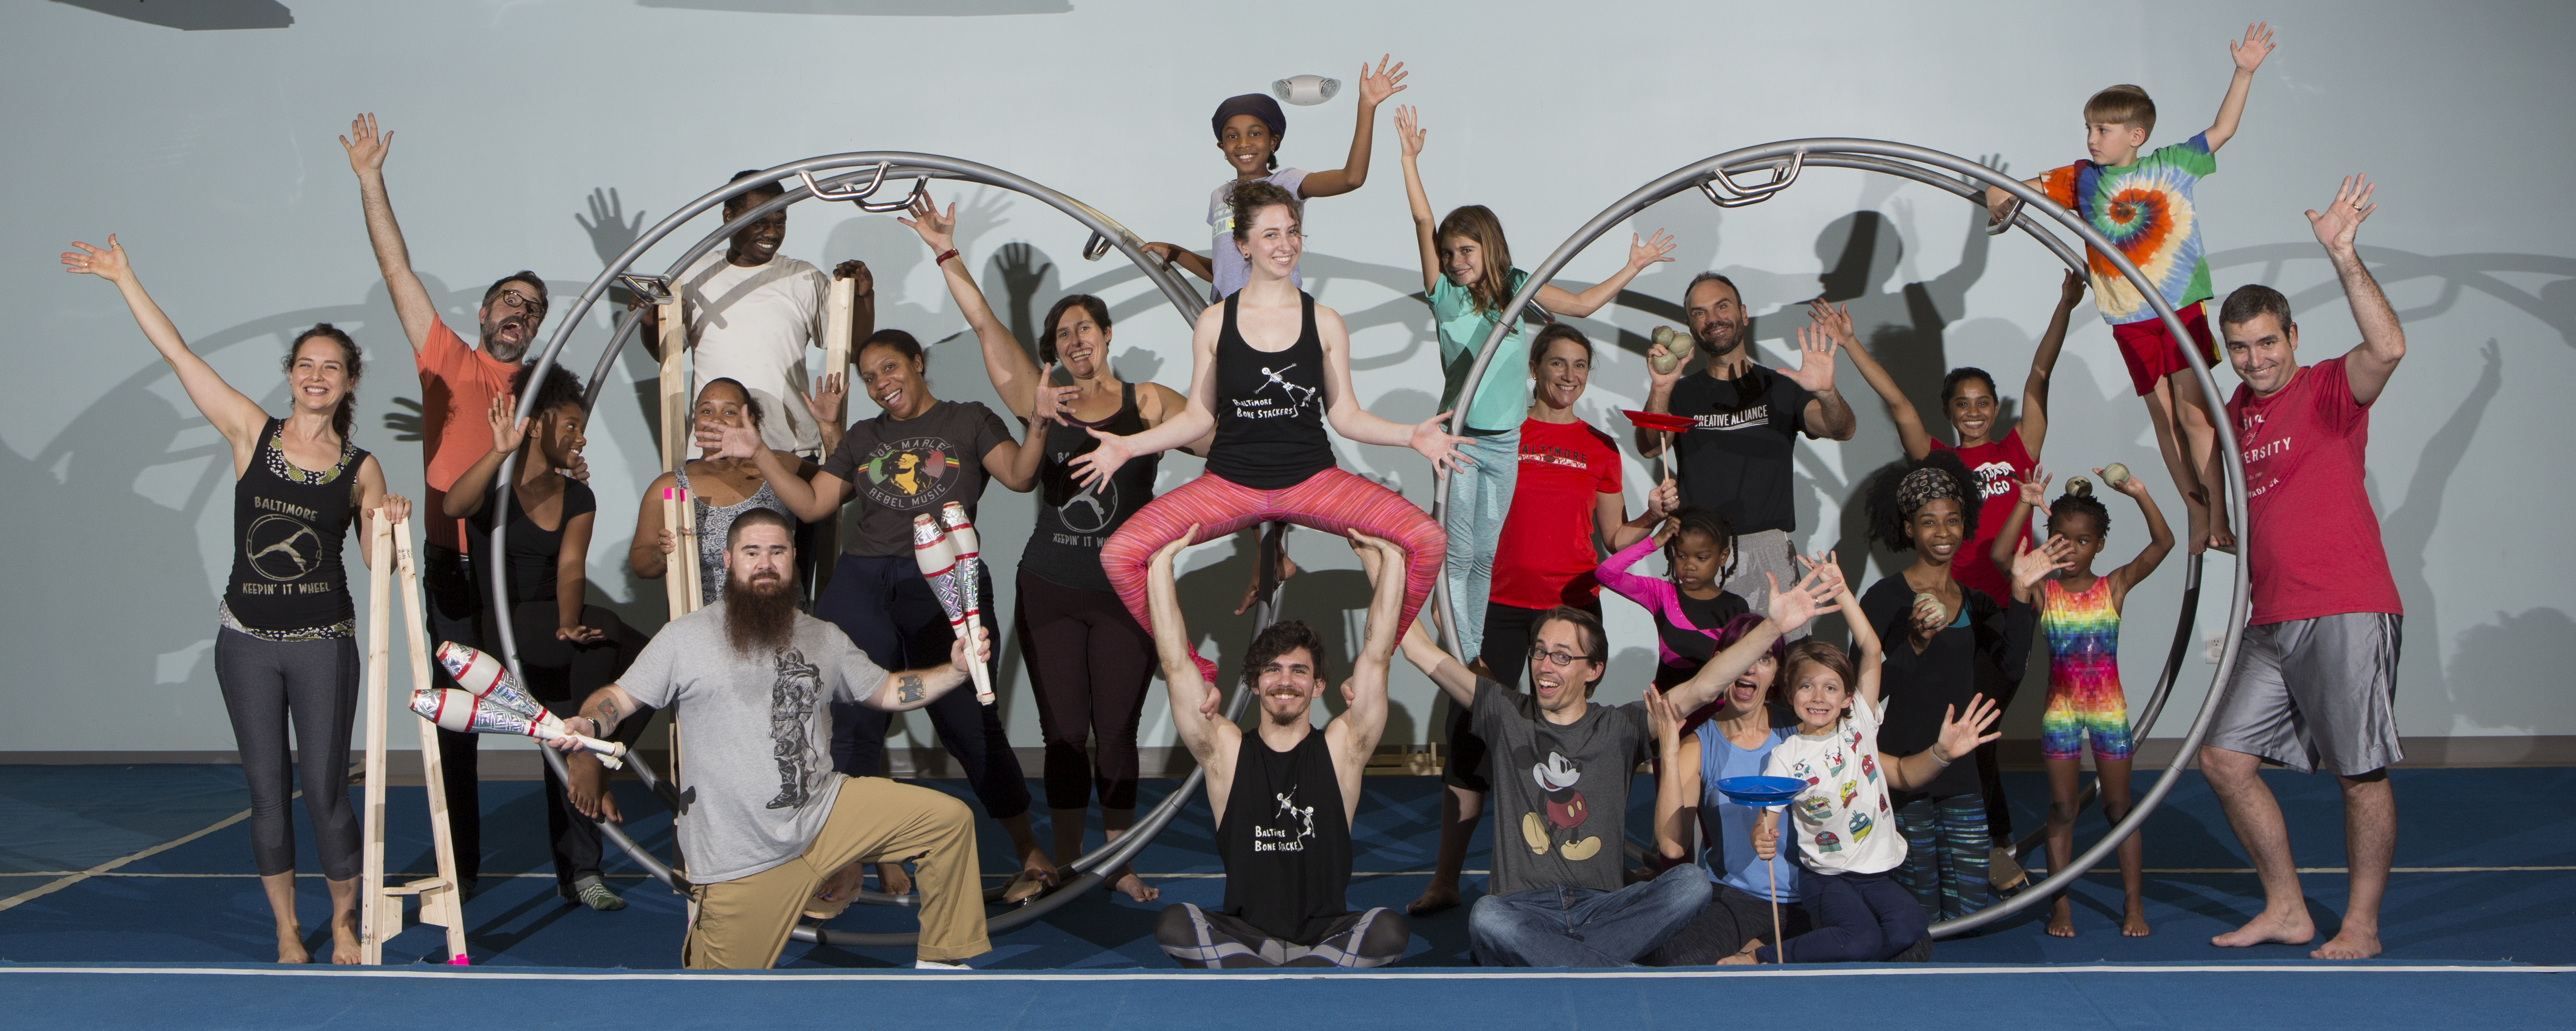 Sokol Family Circus Group Photo - credit